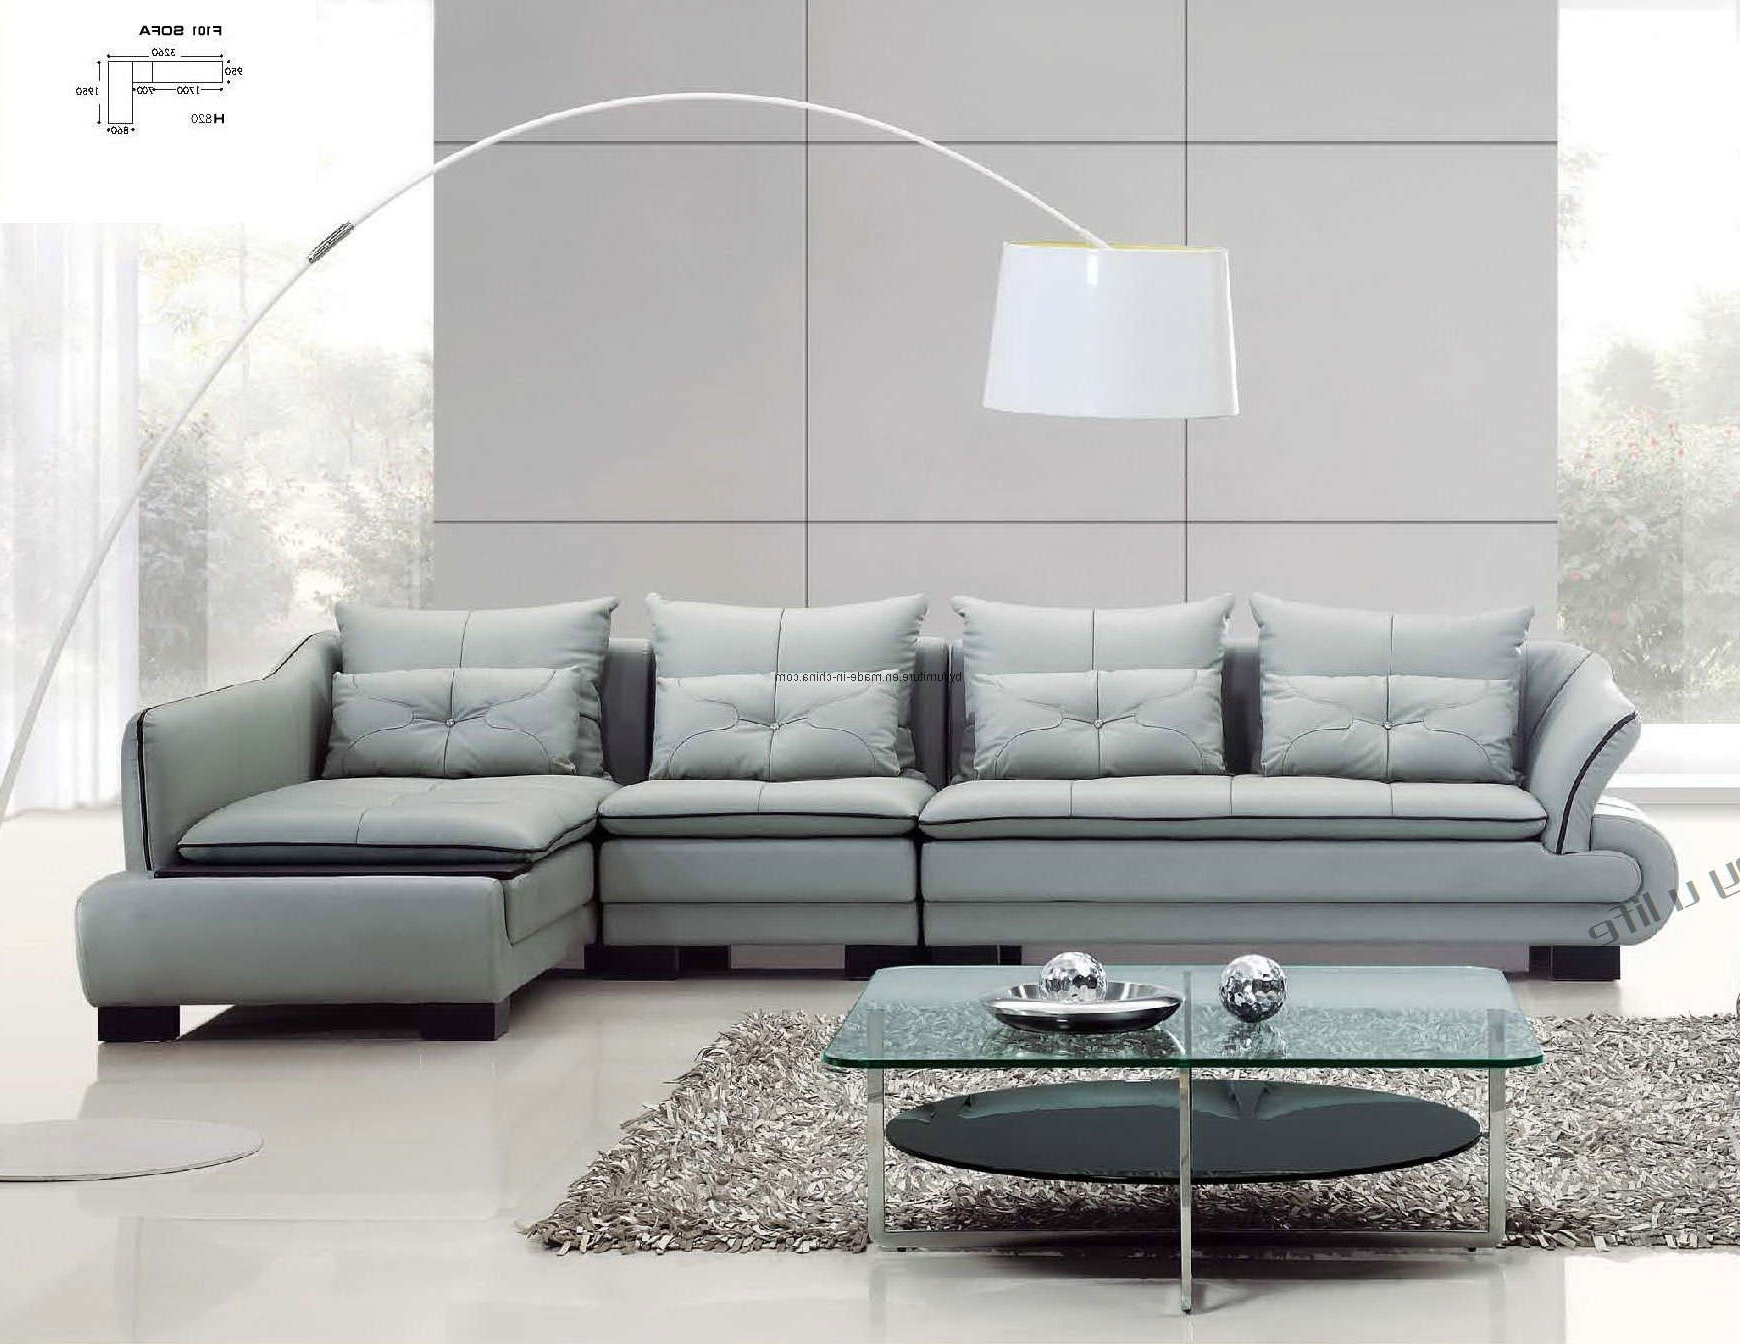 Contemporary Sofas And Chairs Intended For Most Popular Chairs : Interior Mordan Farnichar Contemporary Furniture (View 9 of 20)